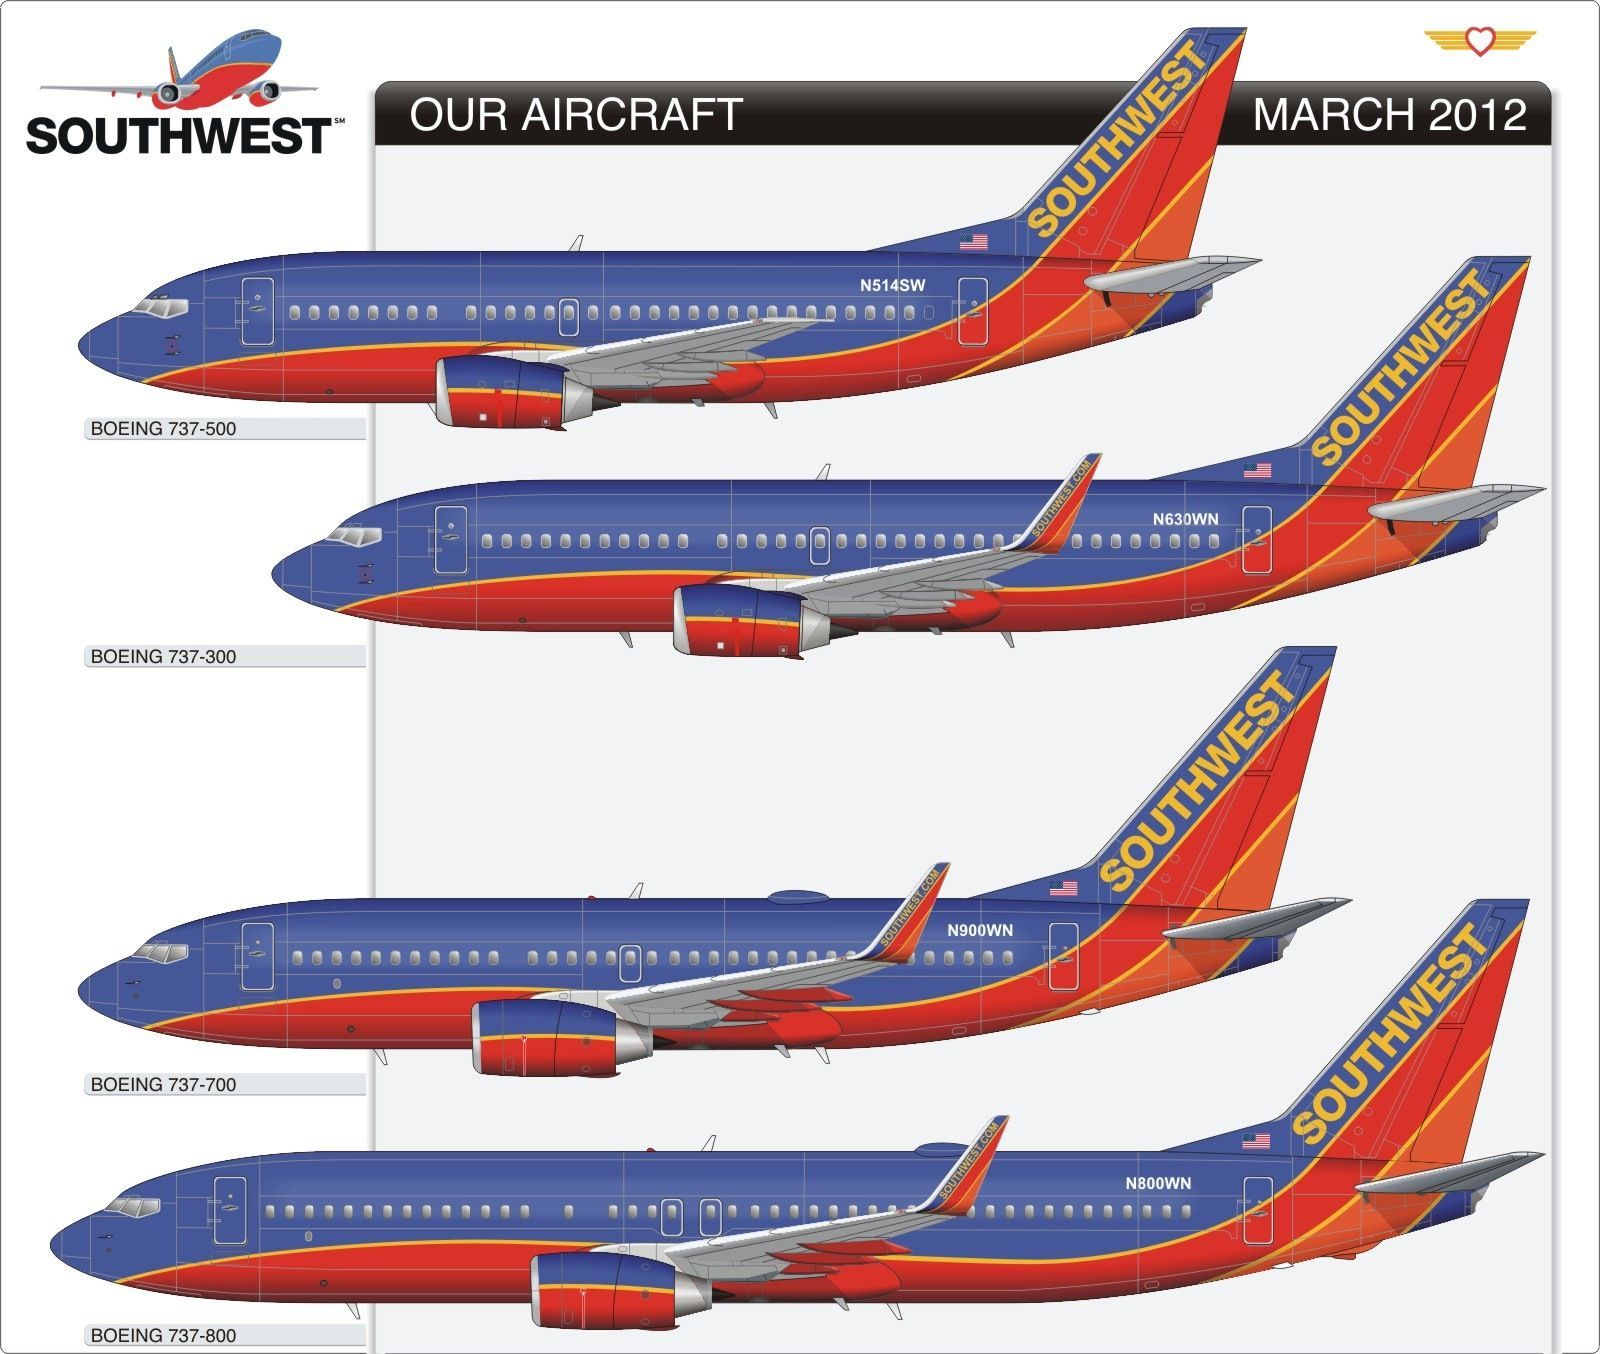 South West 737 Fleet | Link to this page: http://www.aviation-design.net/?id=14110